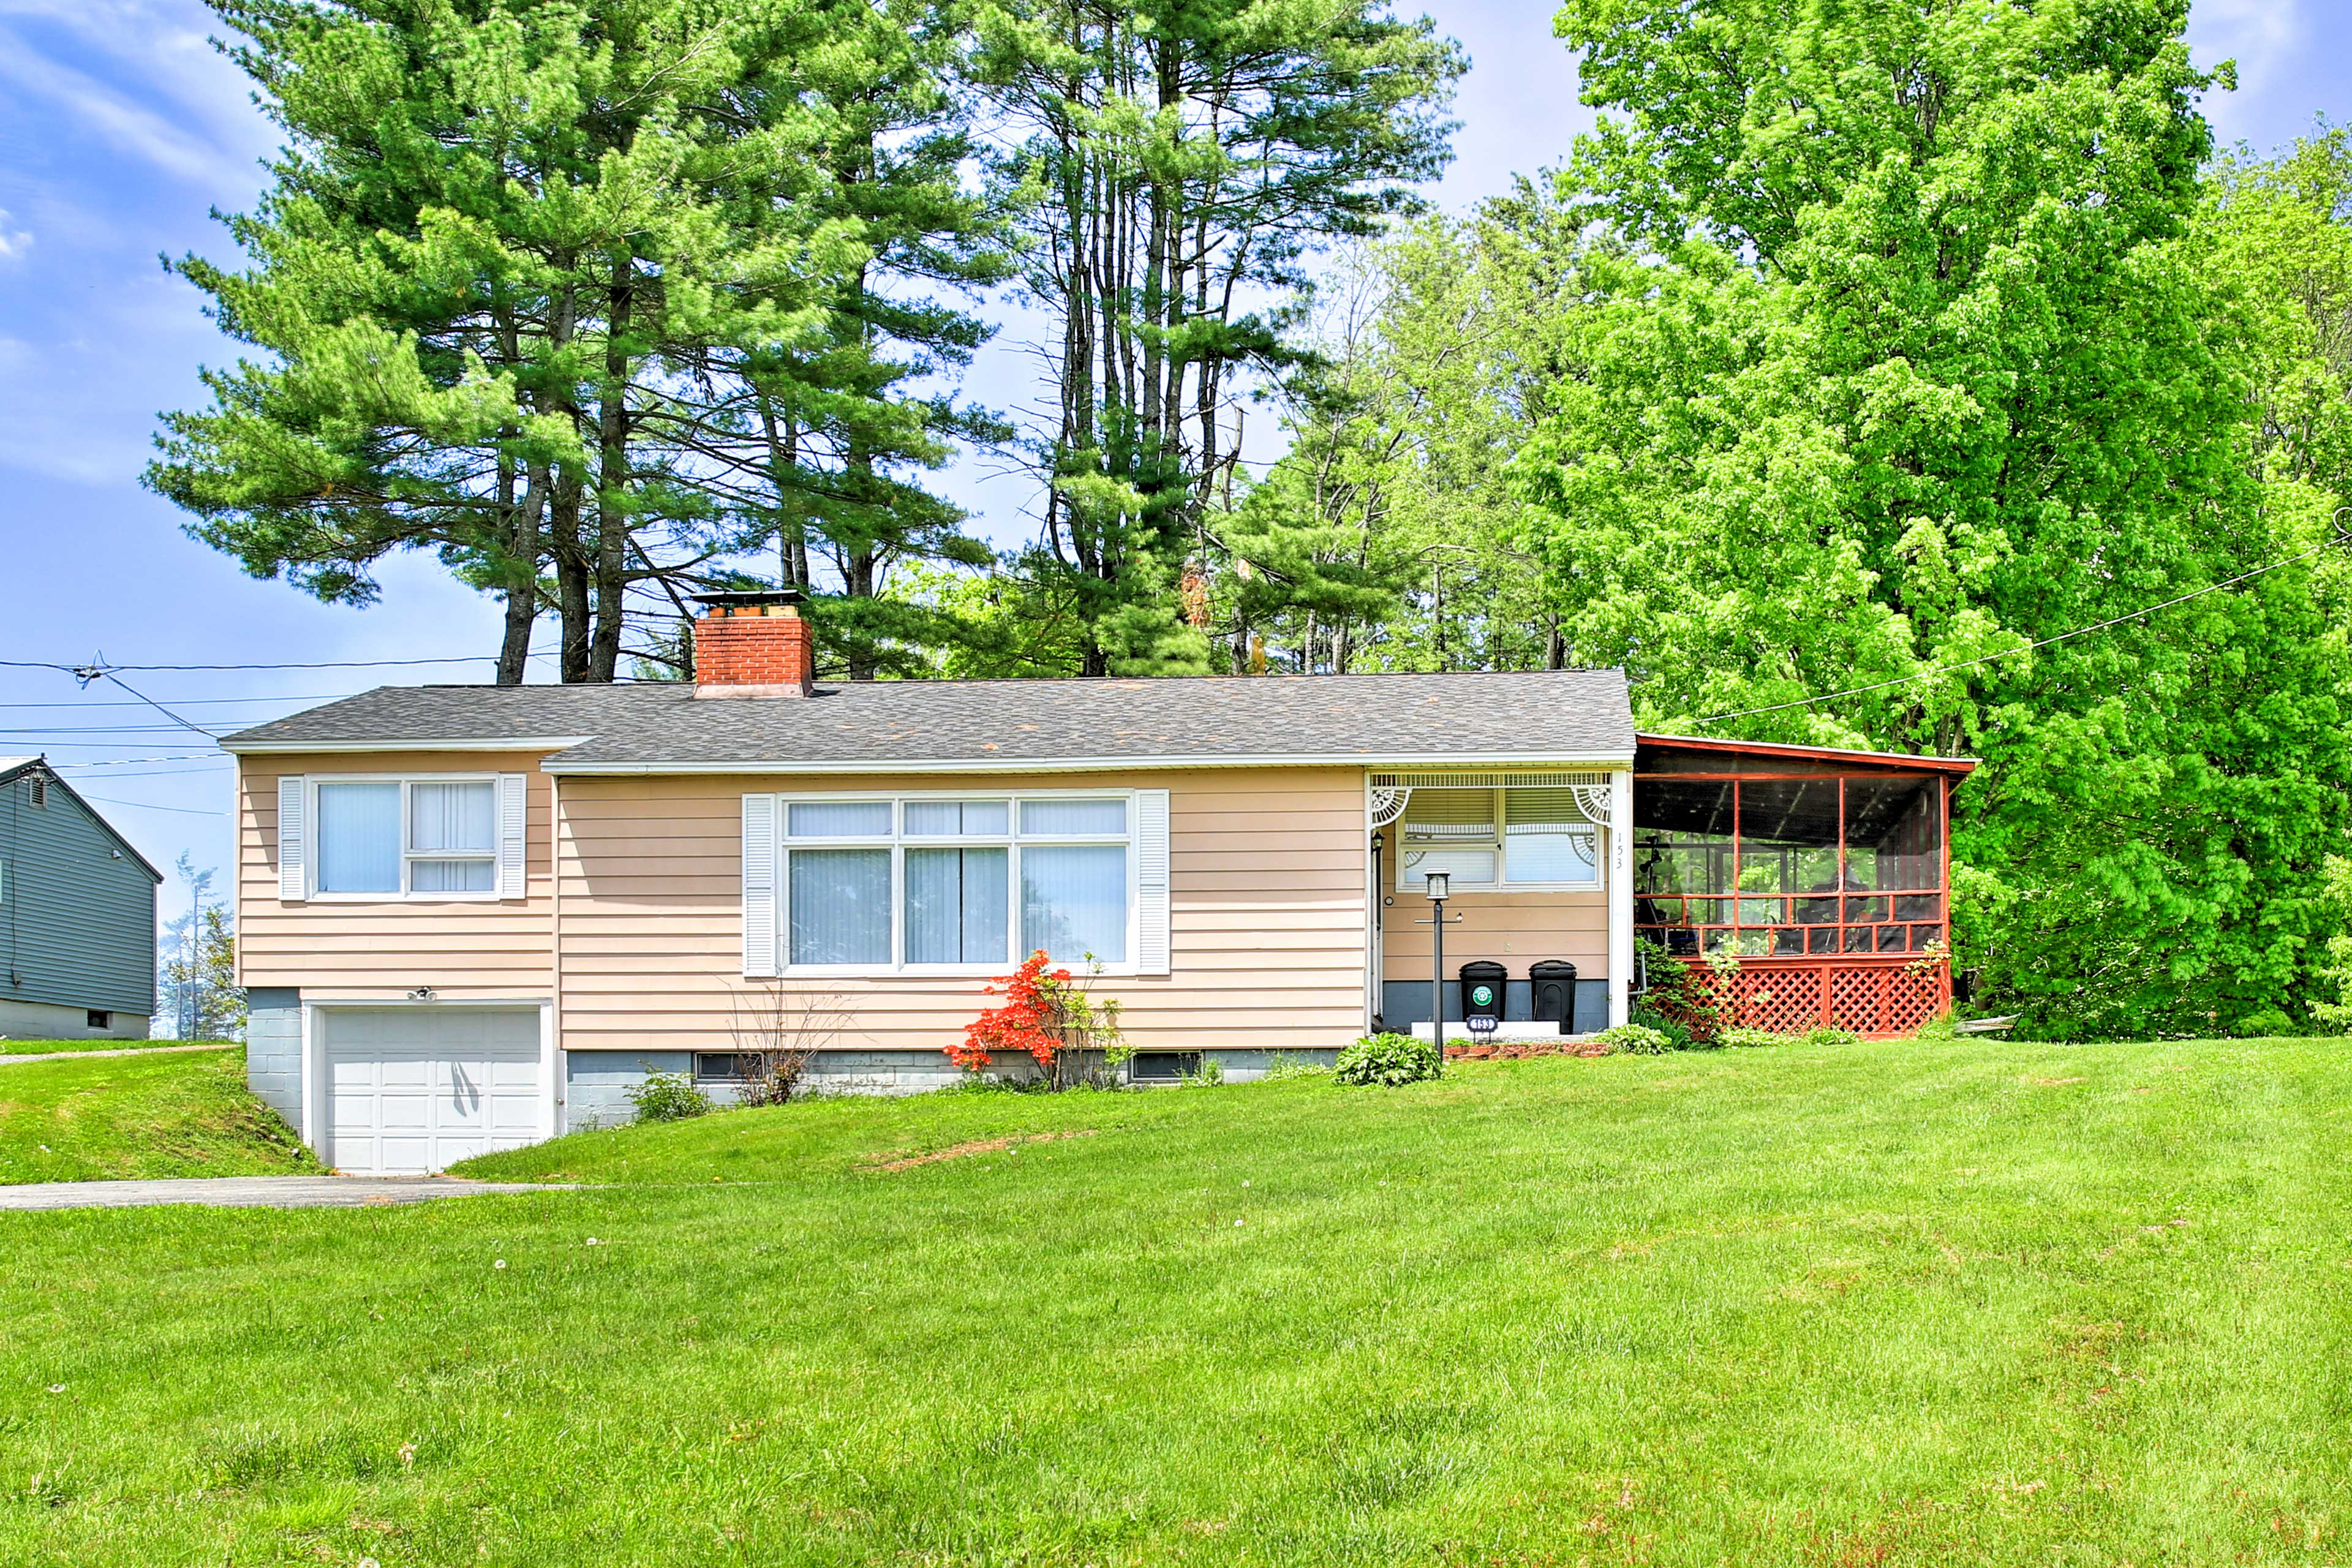 Mayfield Vacation Rental   3BR   2BA   1,340 Sq Ft   1 Story